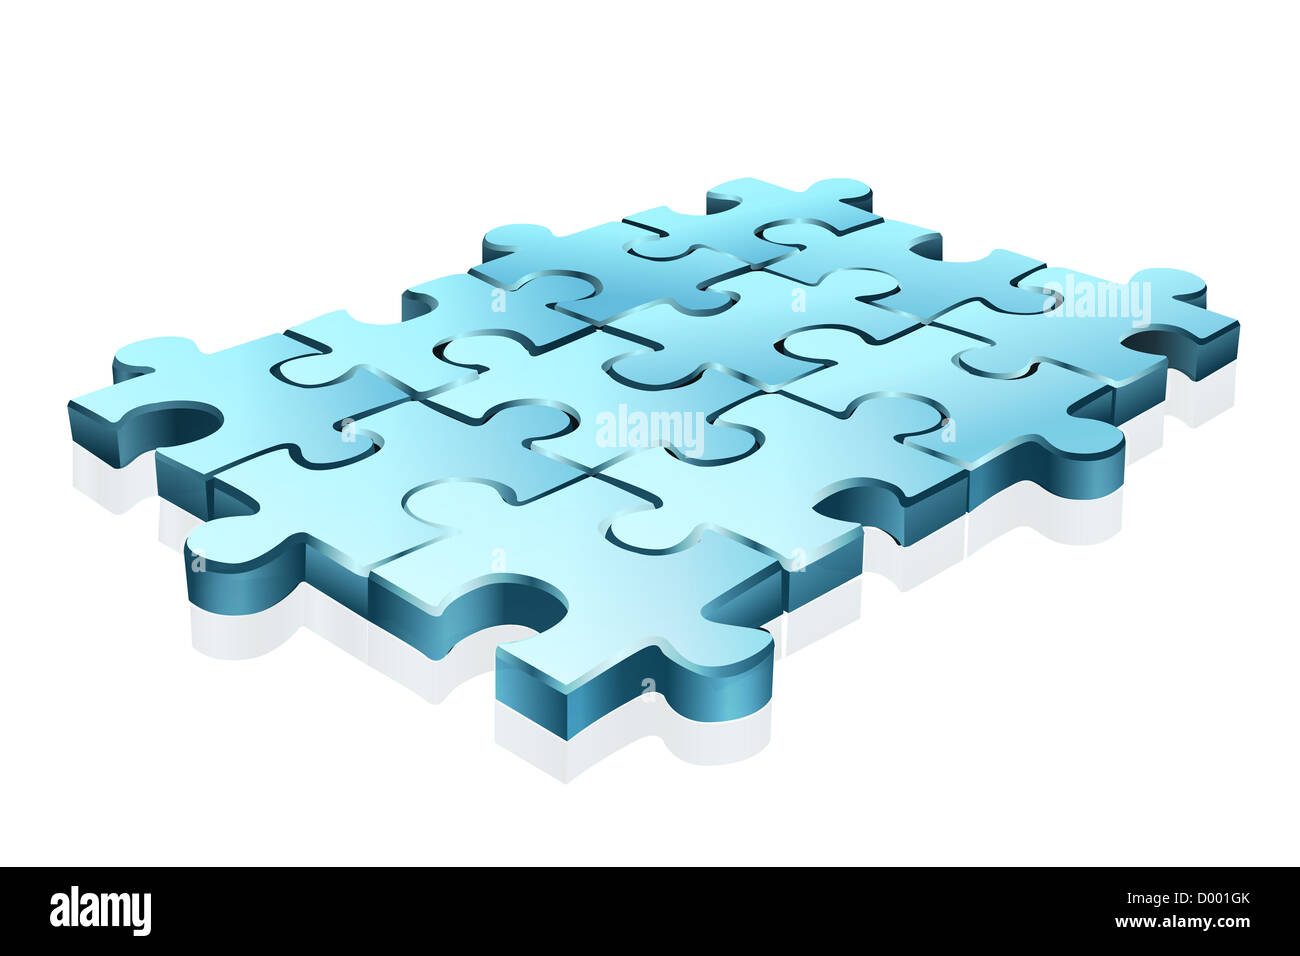 Join The Dots Puzzle Stock Photos & Join The Dots Puzzle Stock ...